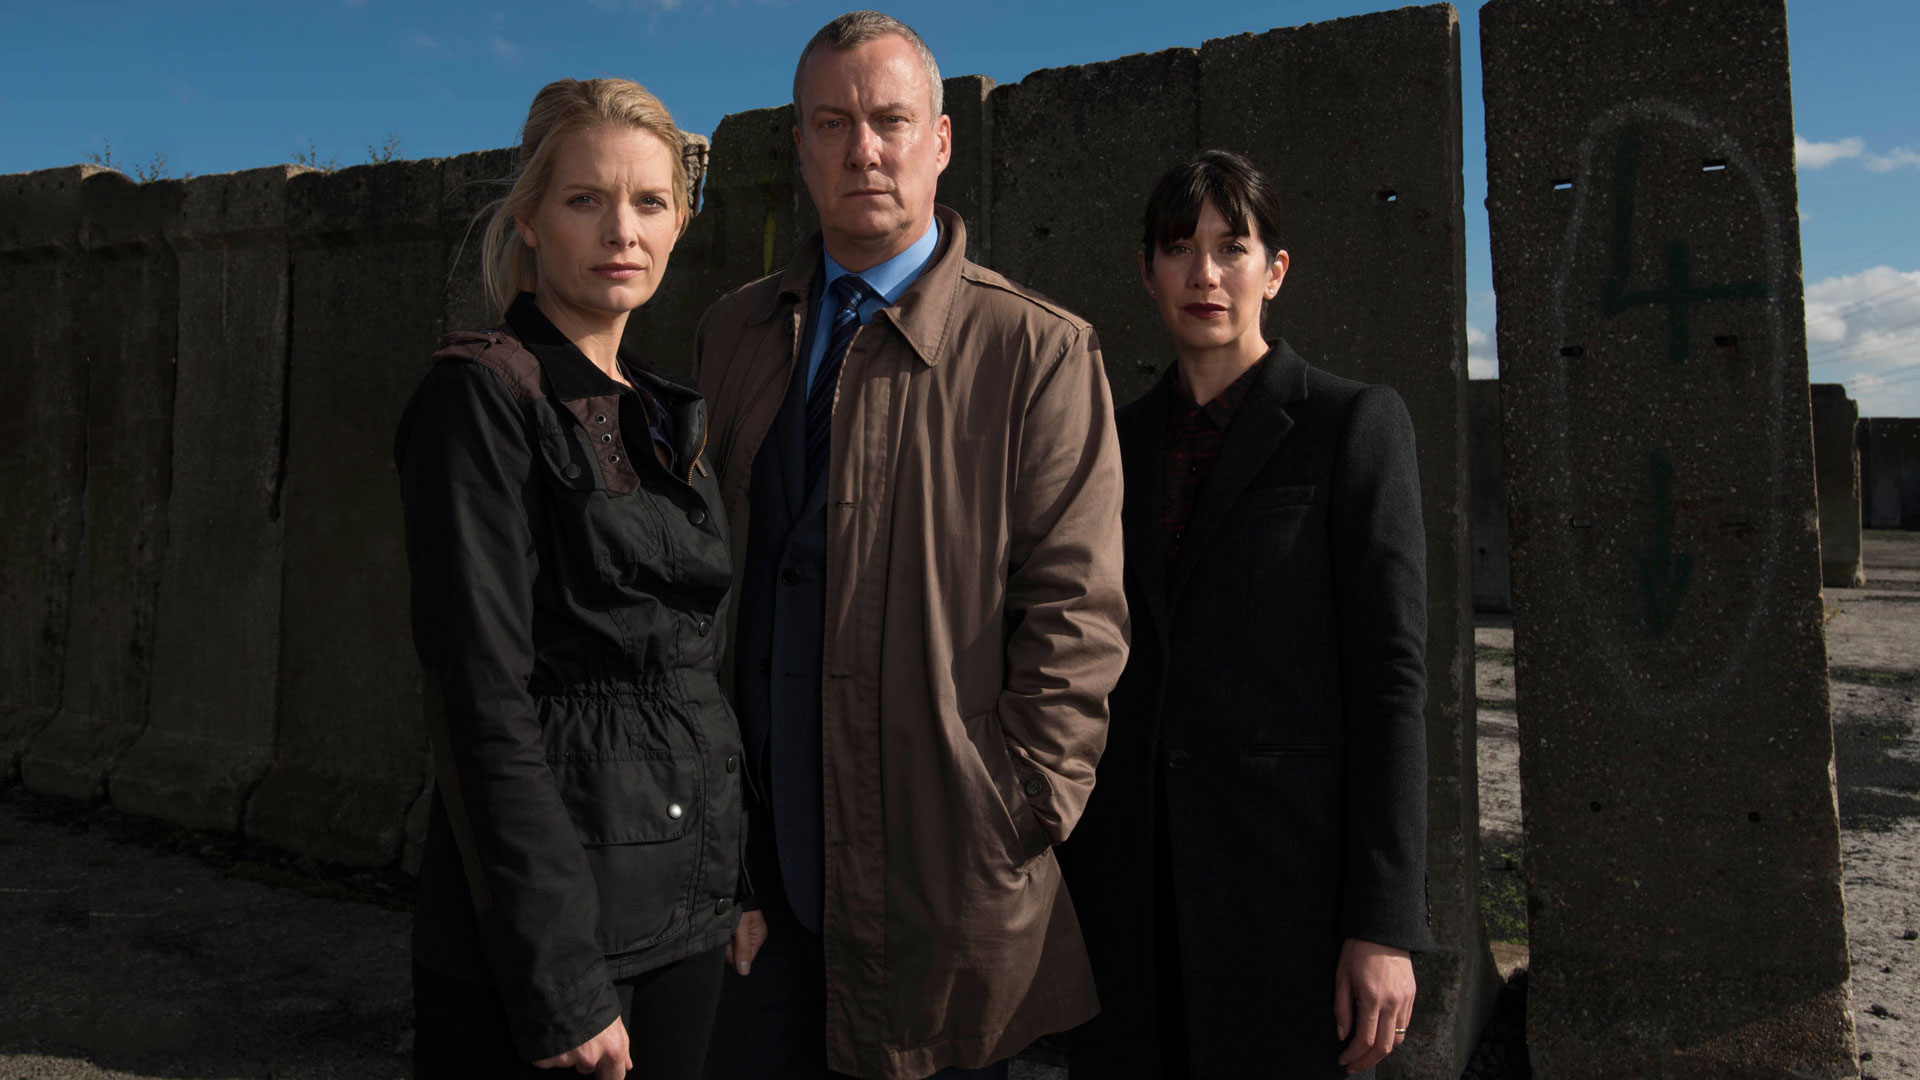 The cast of DCI Banks.